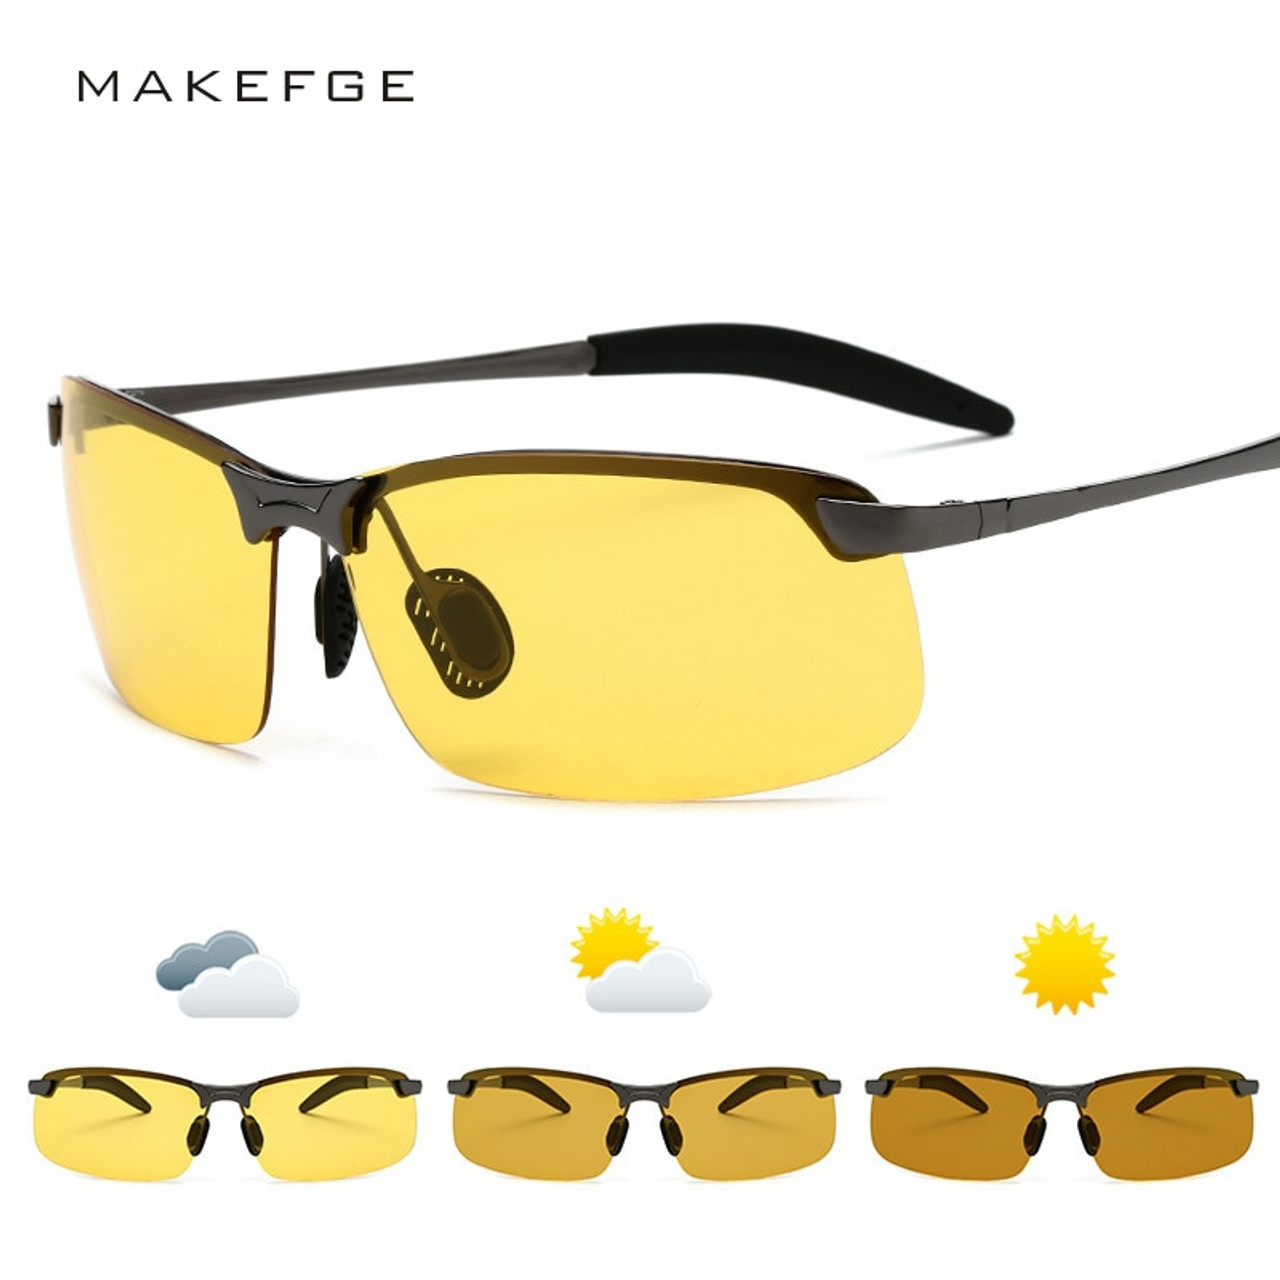 2019 New Photochromic Sunglasses Men Polarized Goggle Male Change Color Sun Glasses Day Night Vision Driving Uv400 Yellow Shades Onshopdeals Com